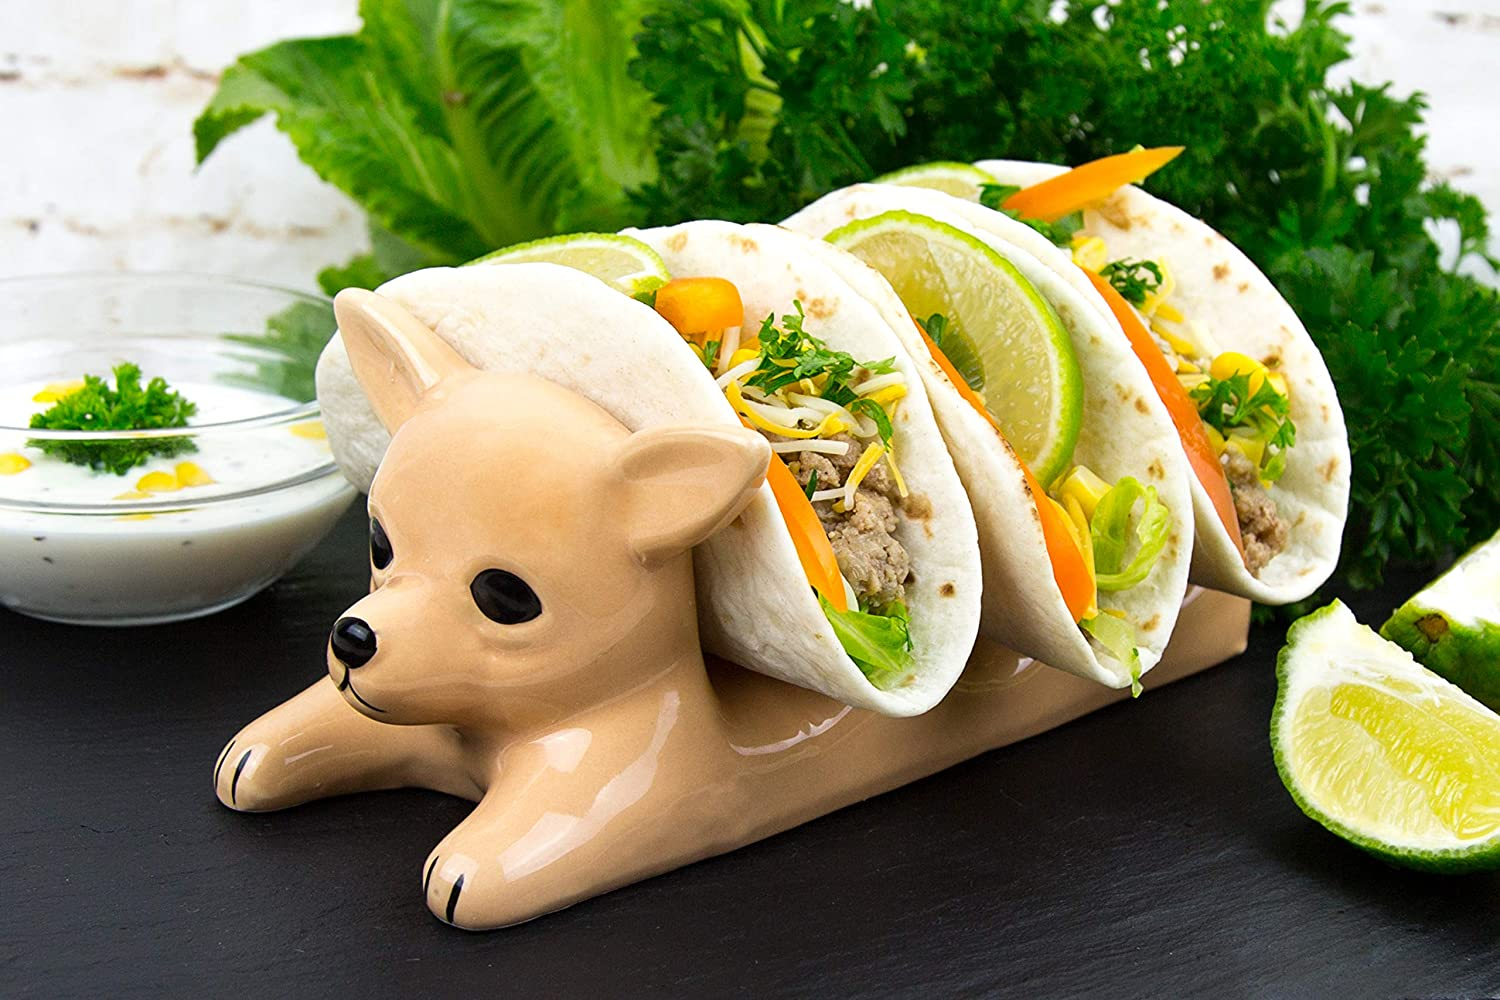 Decorative Ceramic Dog Taco Holder with three tacos in each slot